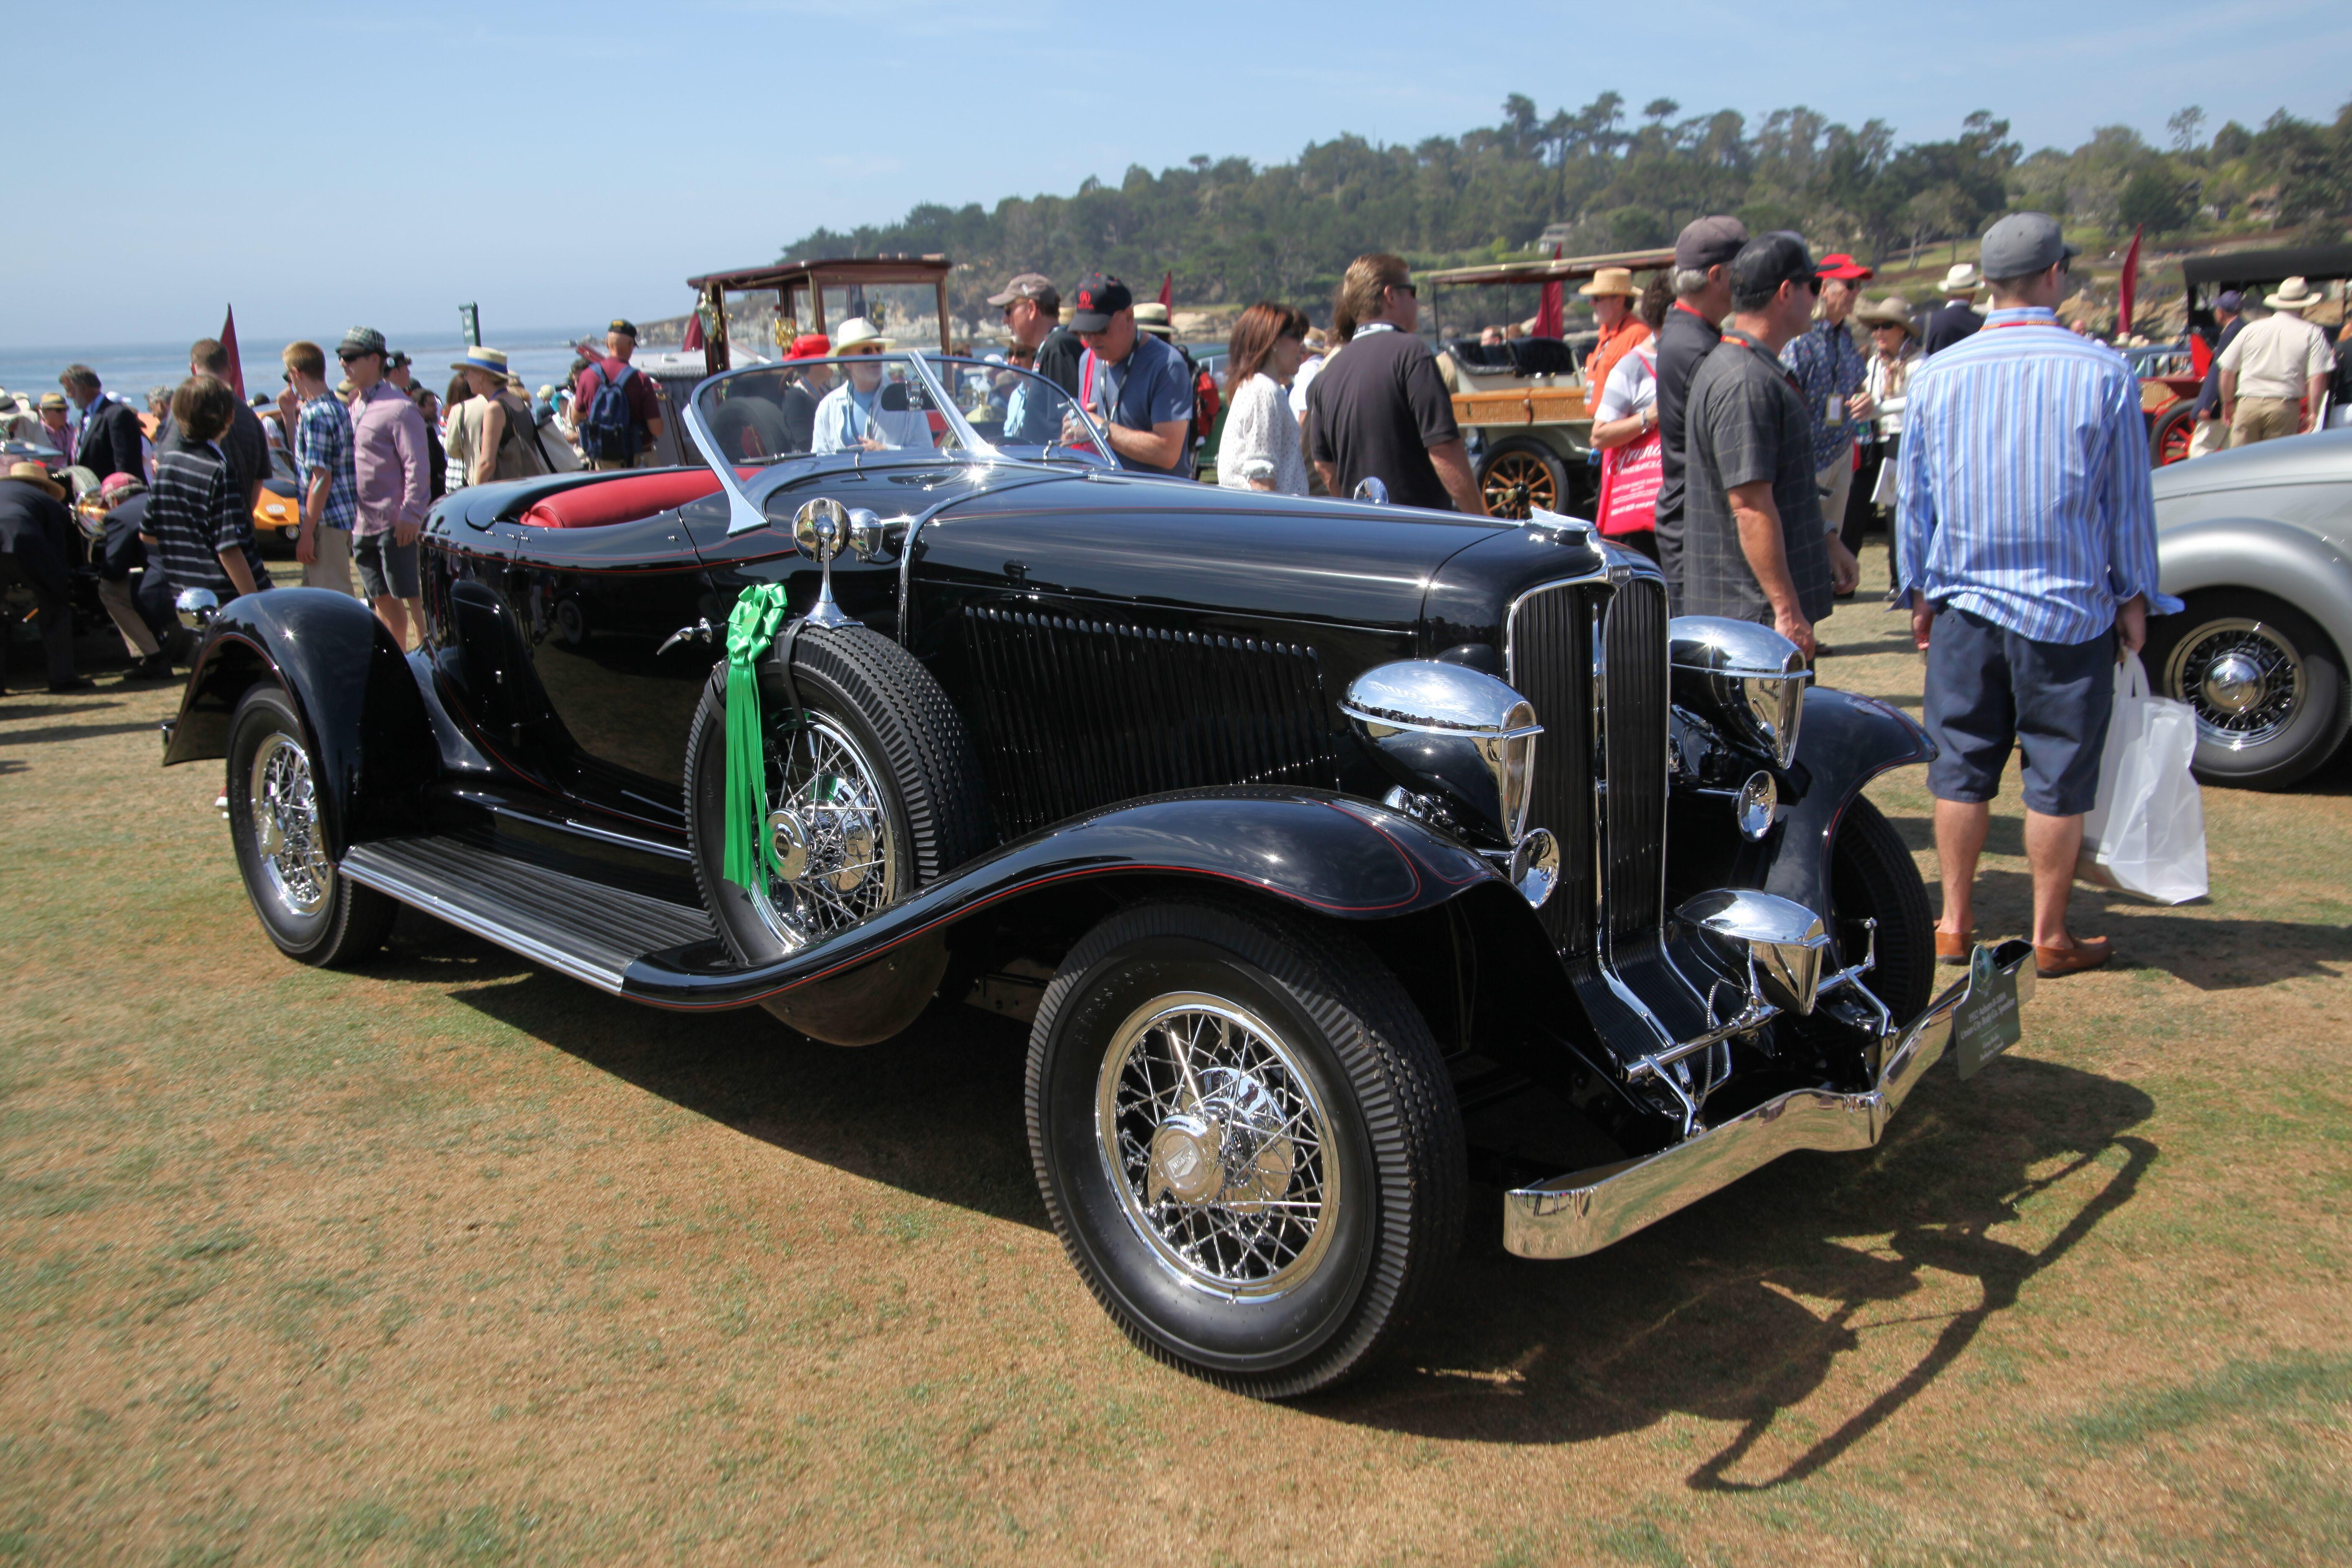 An Inside Look At Dawn Patrol at the Pebble Beach Concours d'Elegance